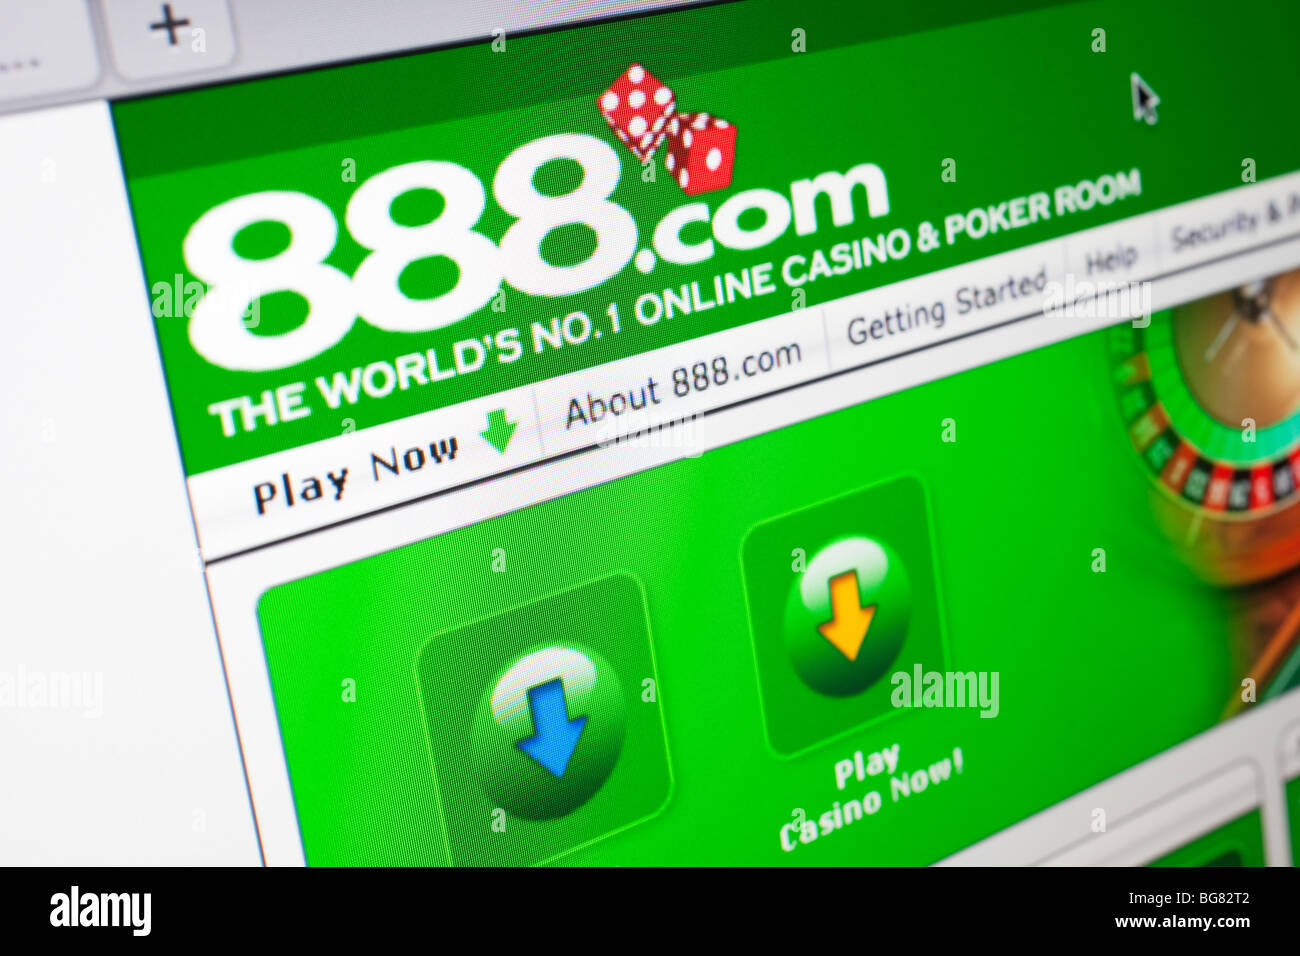 Computer screen showing the website for online gambling and casino site, 888.com - Stock Image